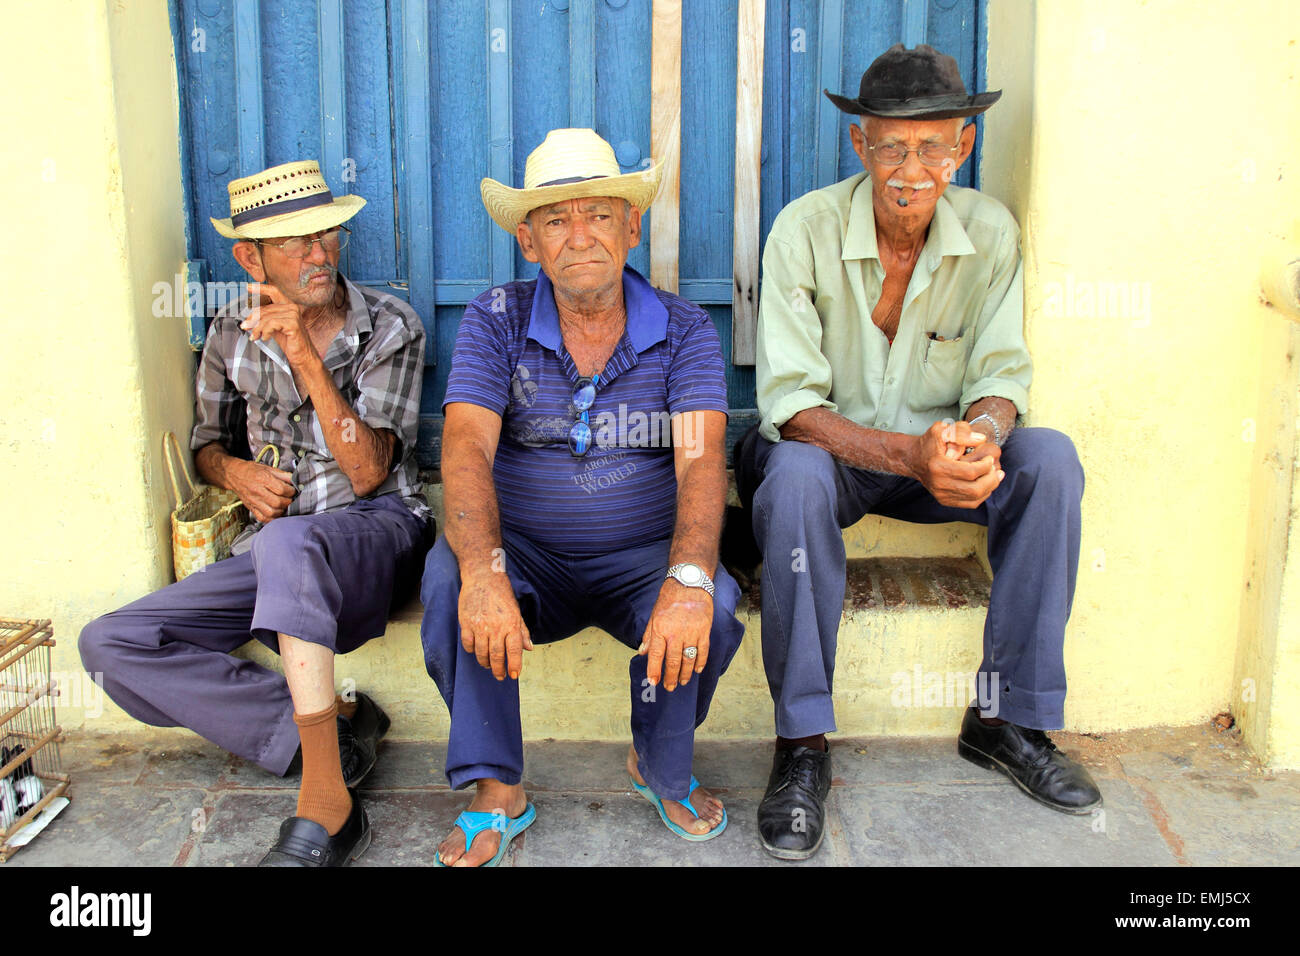 Three elderly gentlemen on a colorful street in Trinidad Cuba - Stock Image